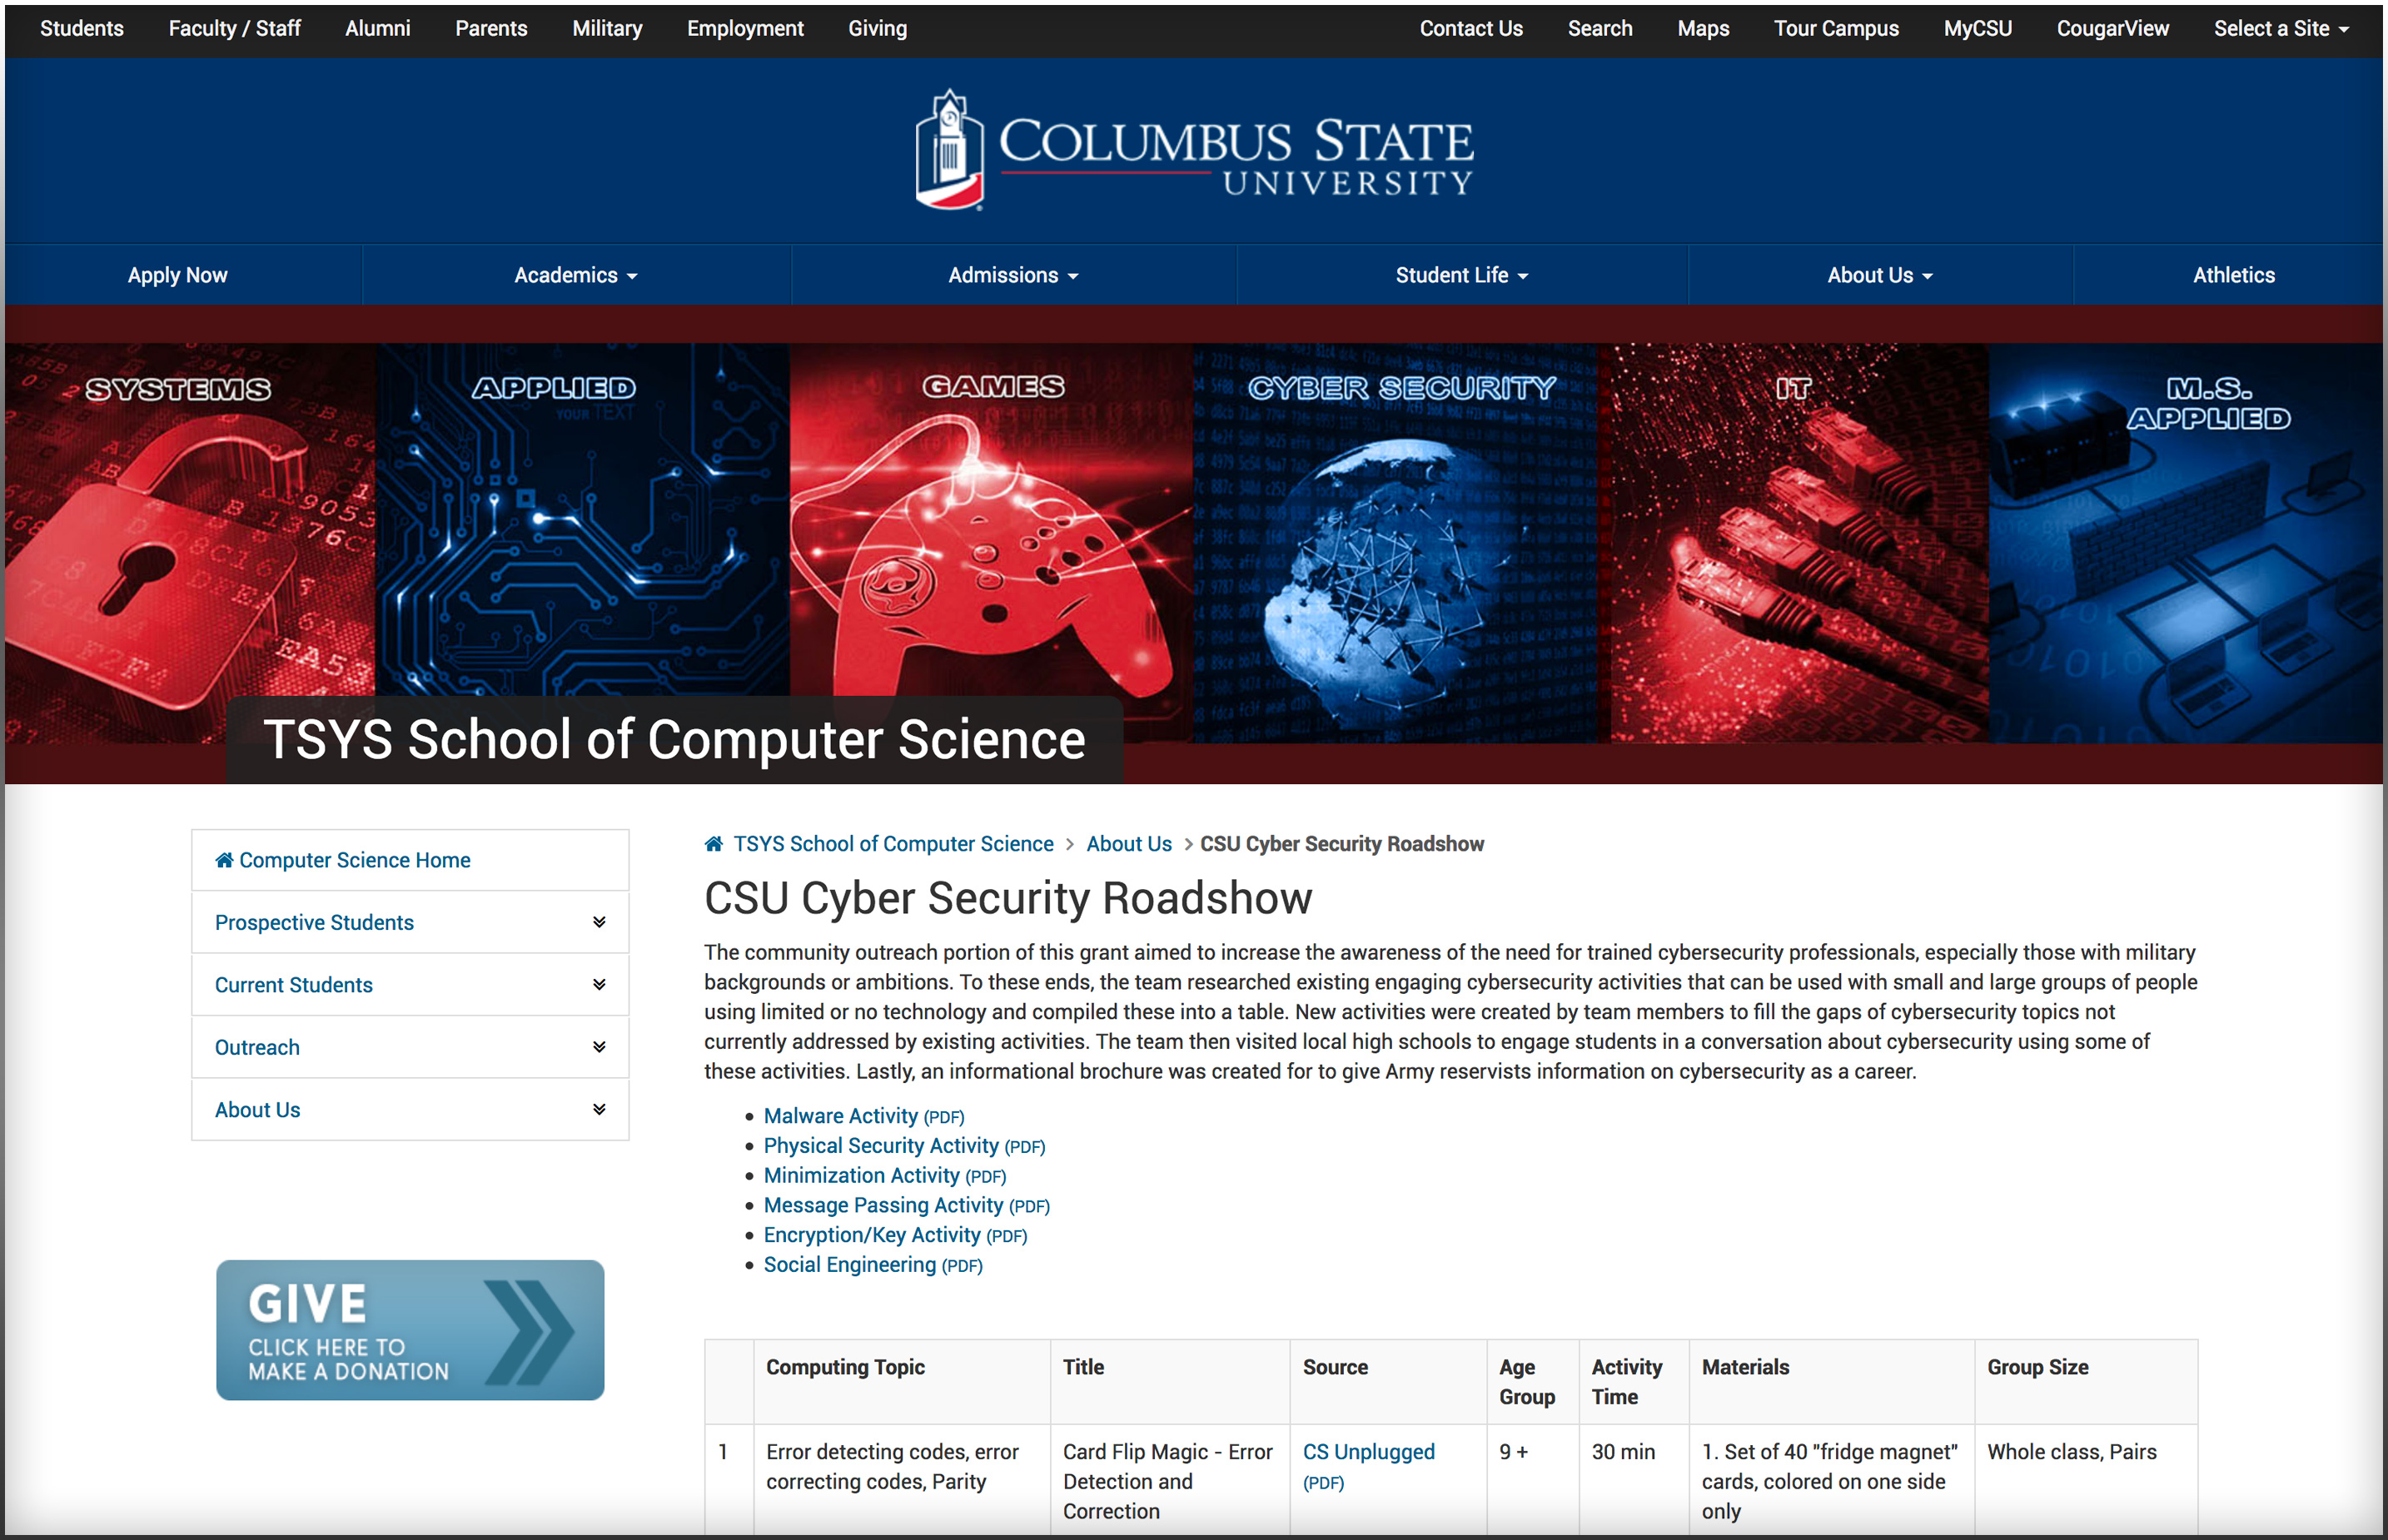 https://cs.columbusstate.edu/about_us/cybersecurity_roadshow.php